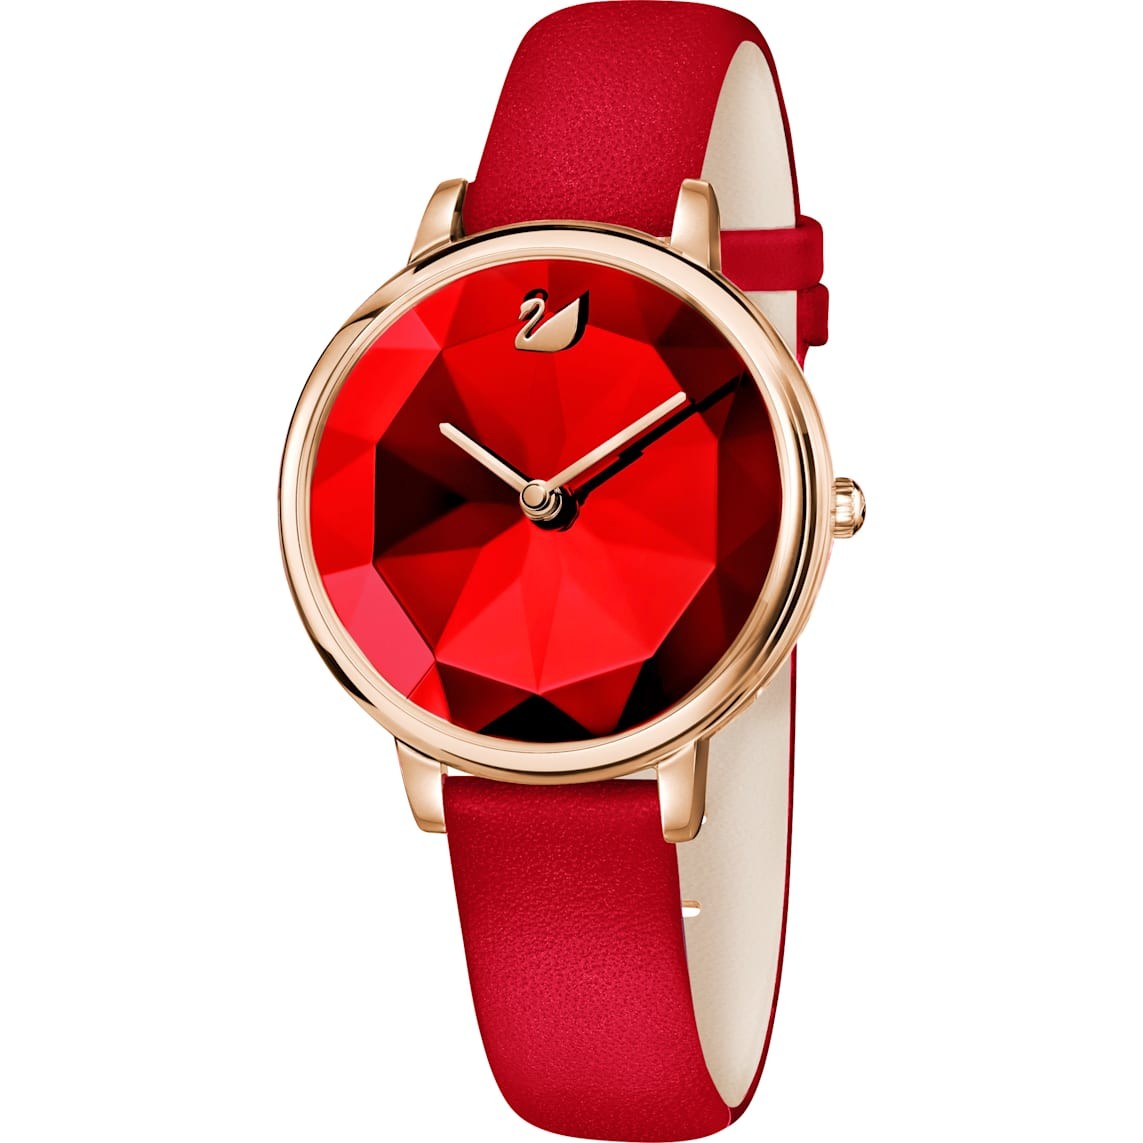 Crystal Lake Watch, Leather strap, Red, Rose-gold tone PVD - Swarovski.com Crystal Lake Watch, Leather strap, Red, Rose-gold tone PVD by SWAROVSKI - 웹